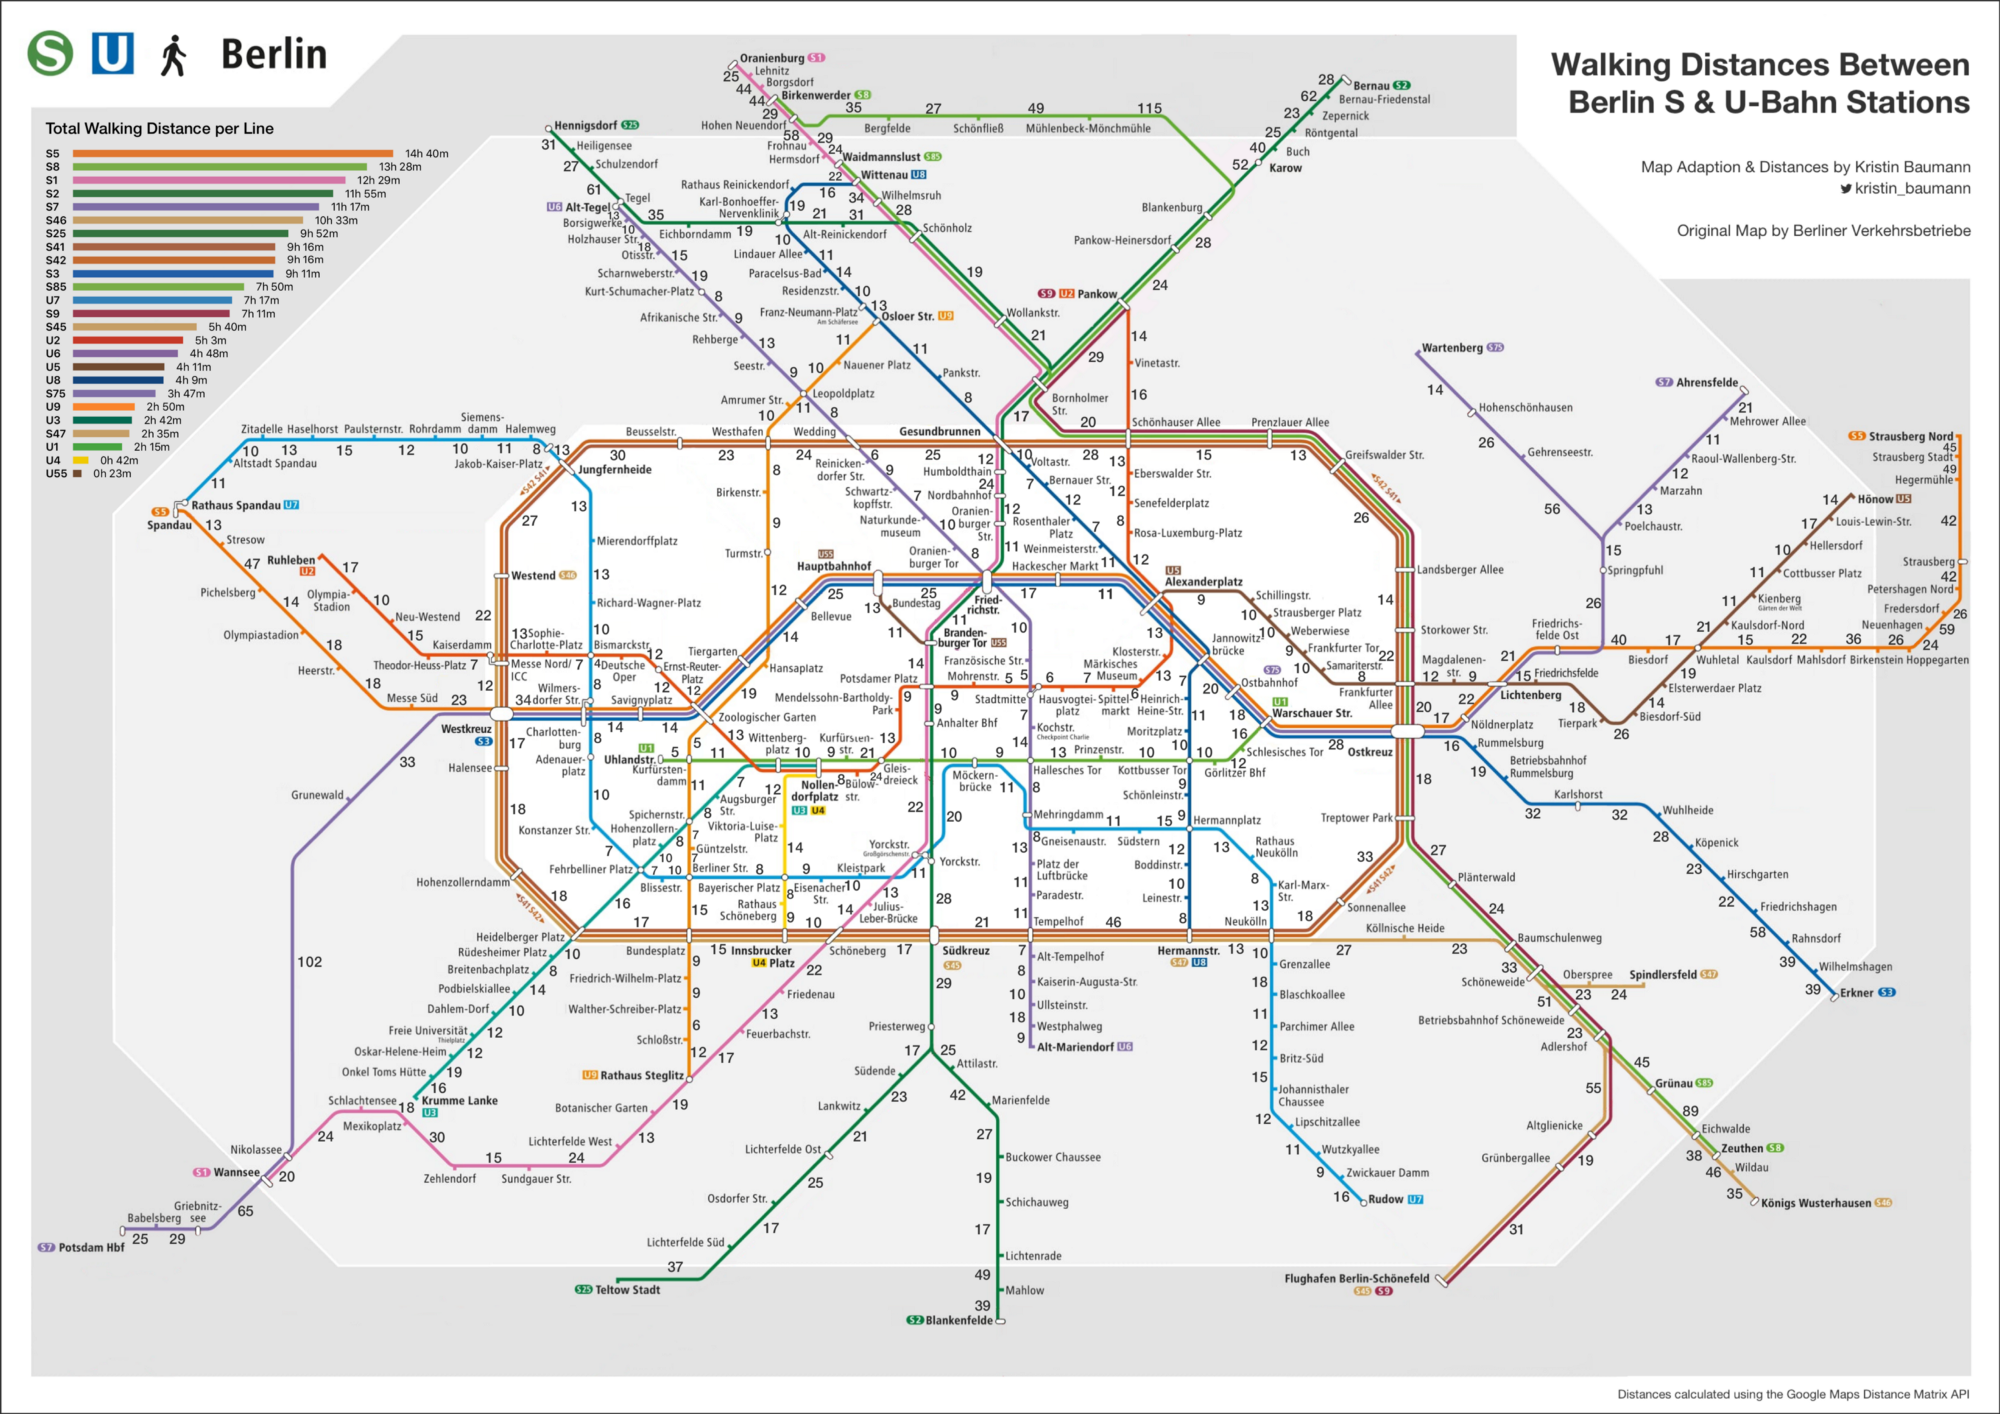 Berlin Train Map Walking the Berlin S  & U Bahn Network   Kristin Baumann   Medium